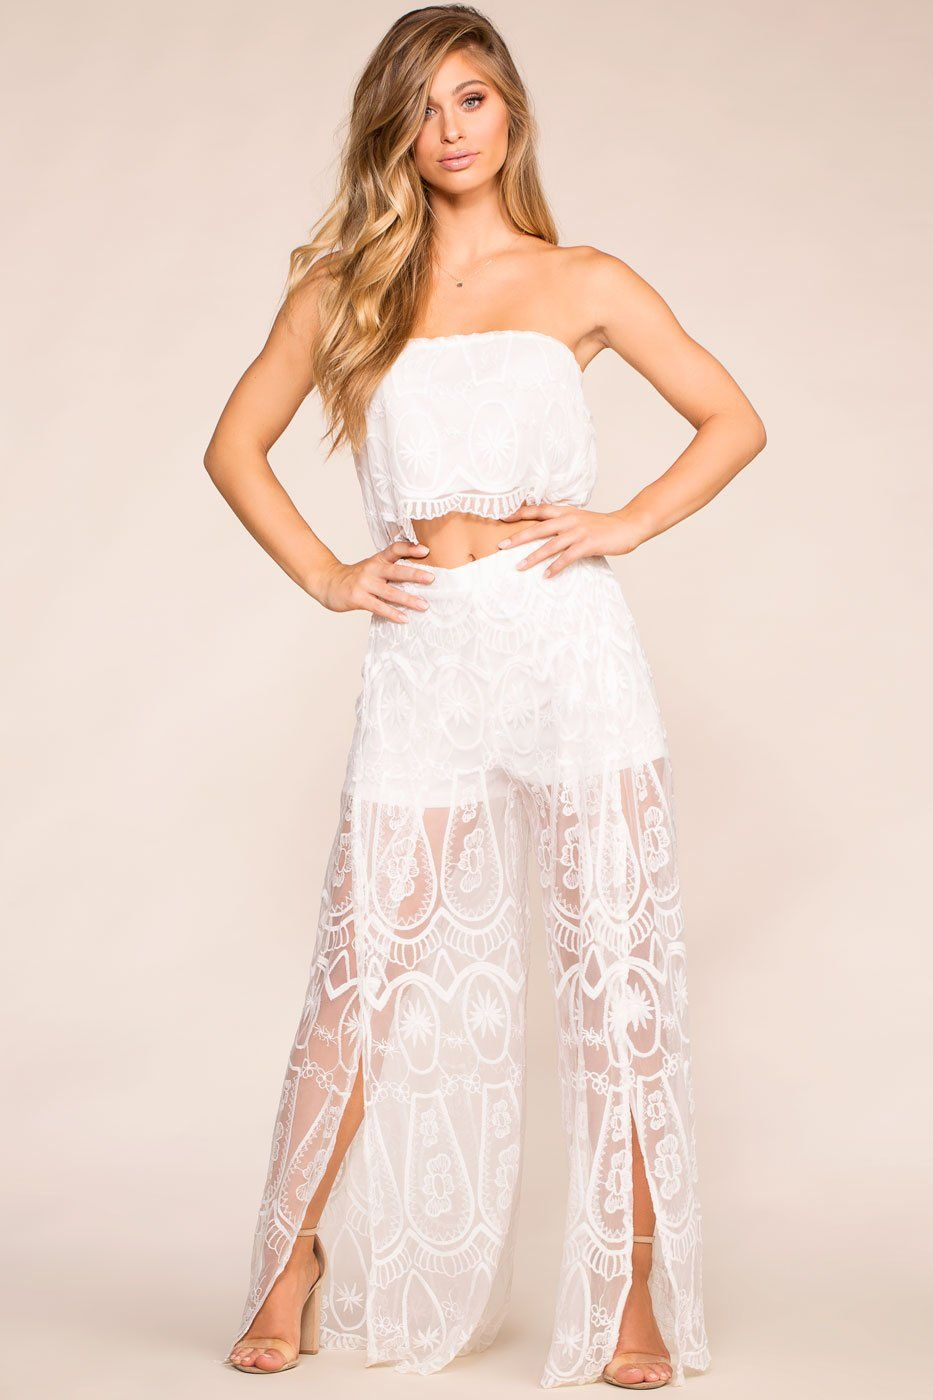 3dffb14390b Boho White Lace Flowy Pants Boho White Lace Flowy Pants ...